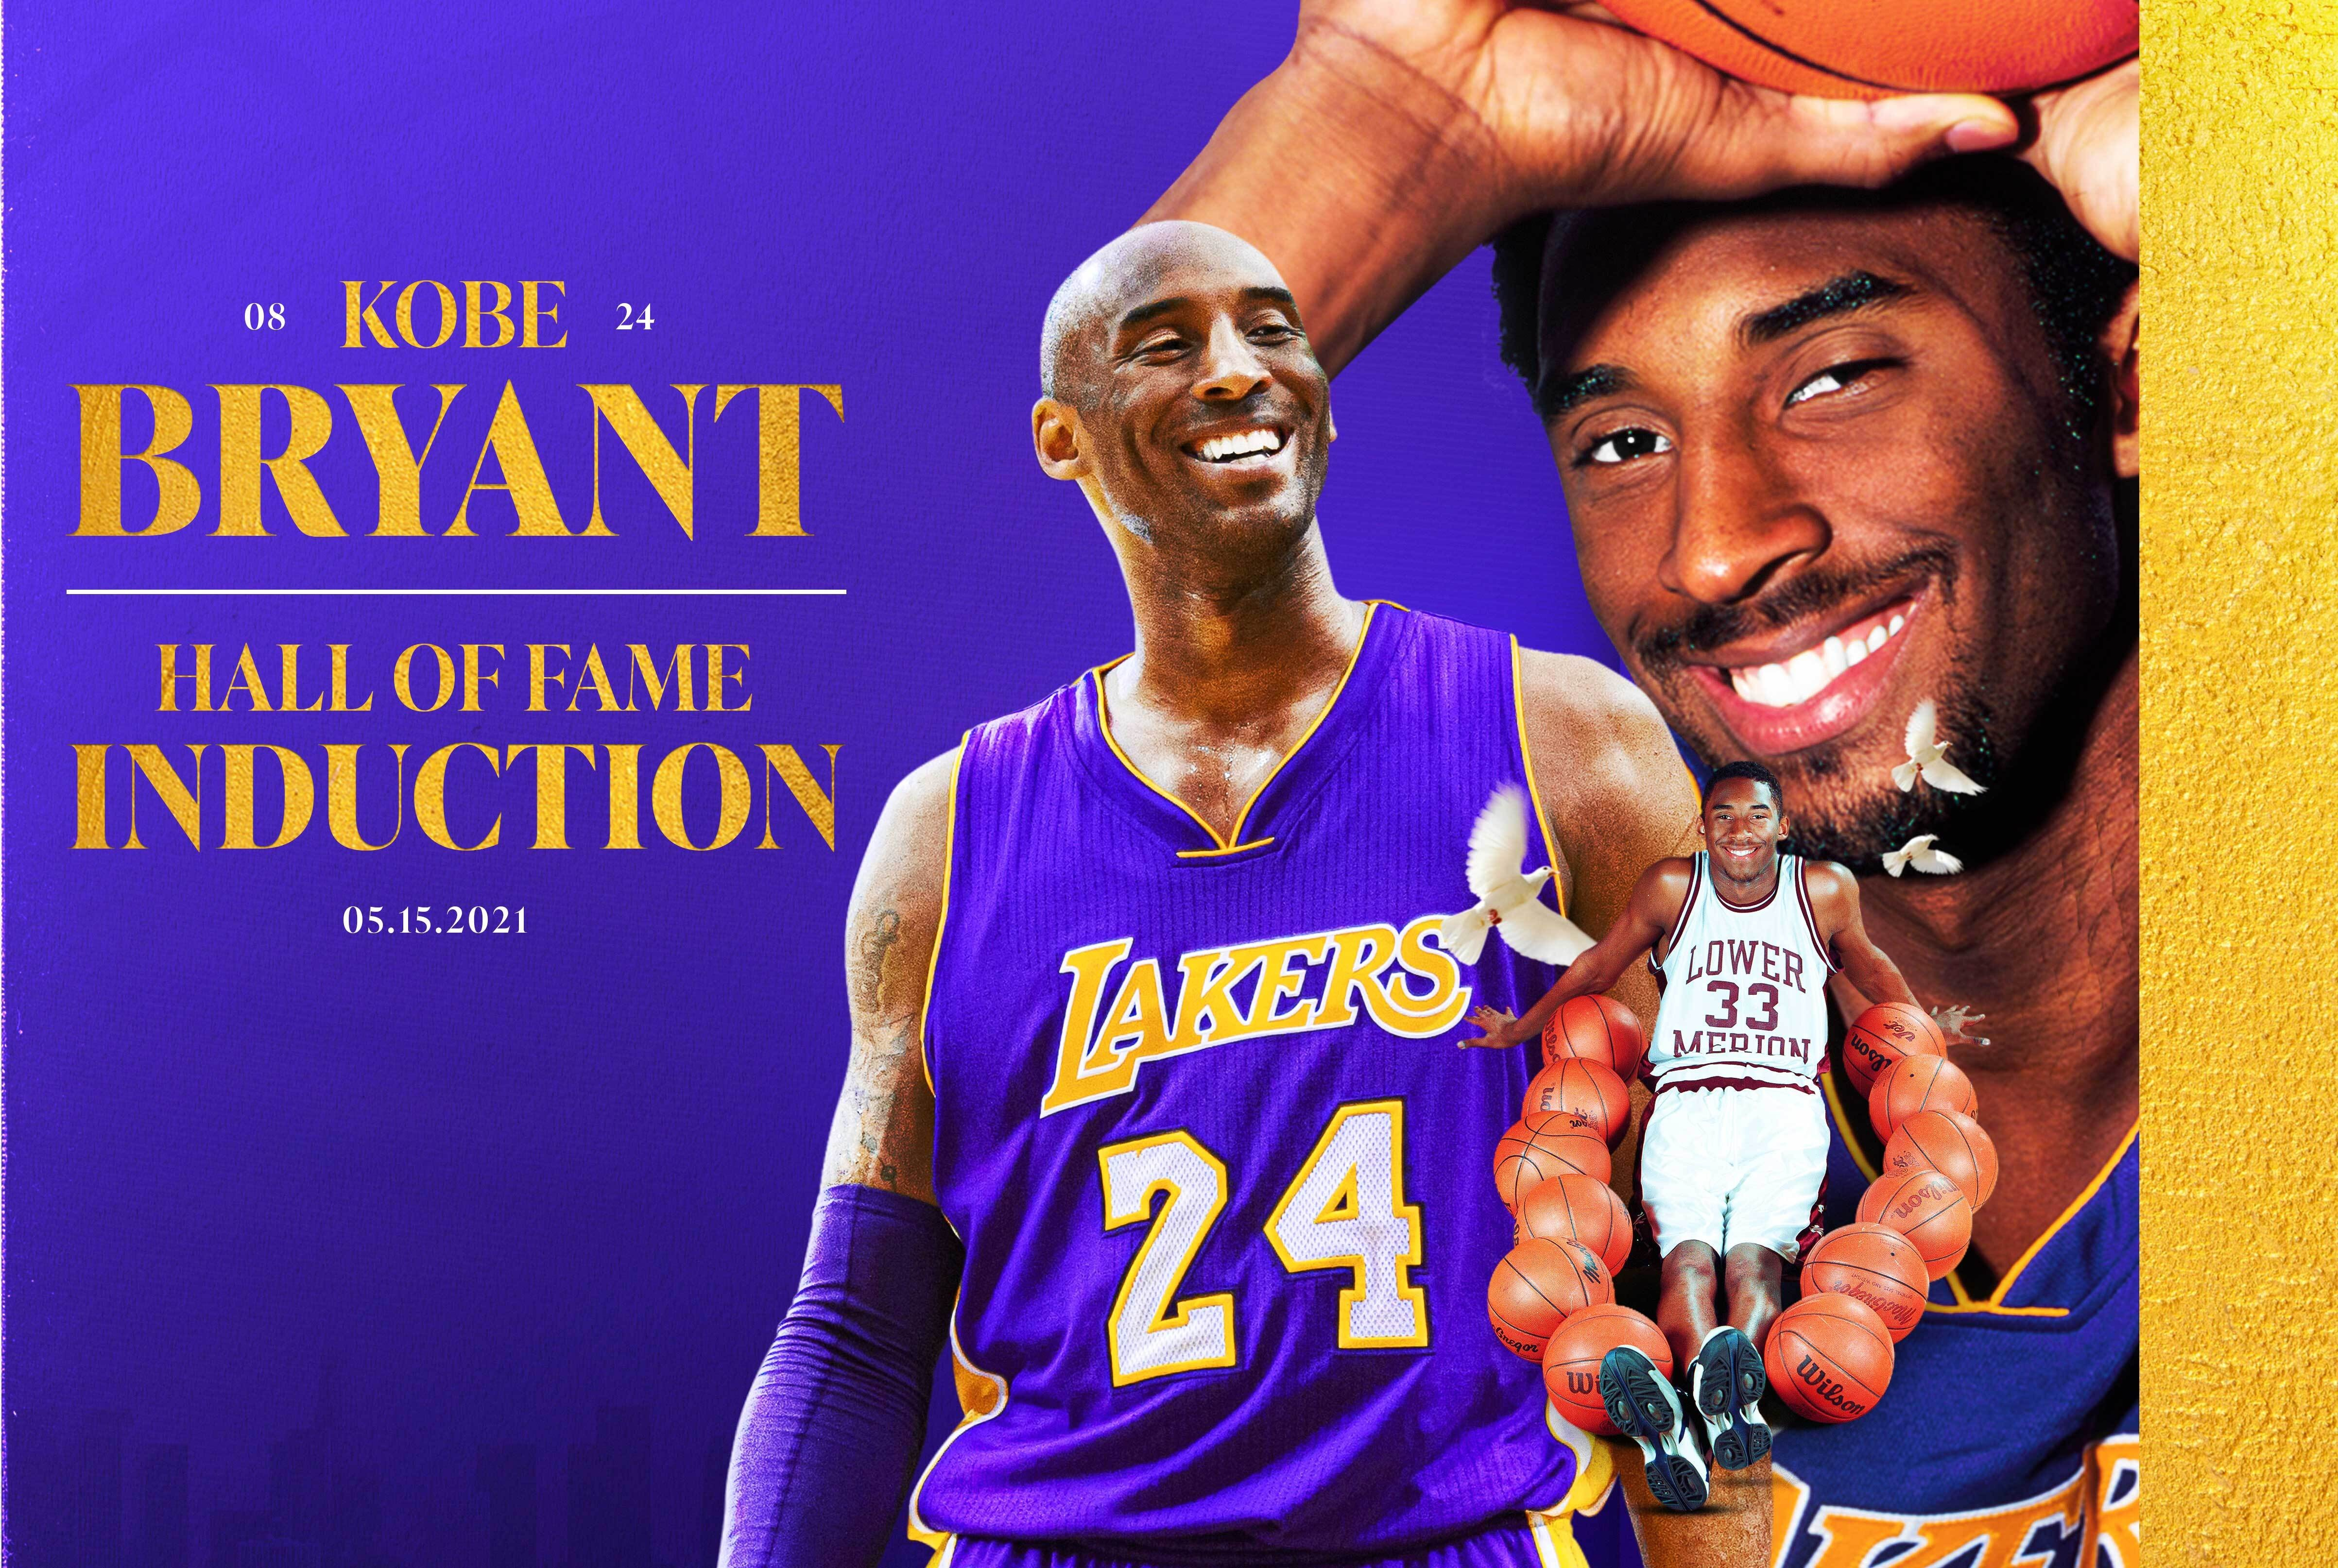 Emotions to Soar as Kobe Bryant Inducted Into Basketball Hall of Fame